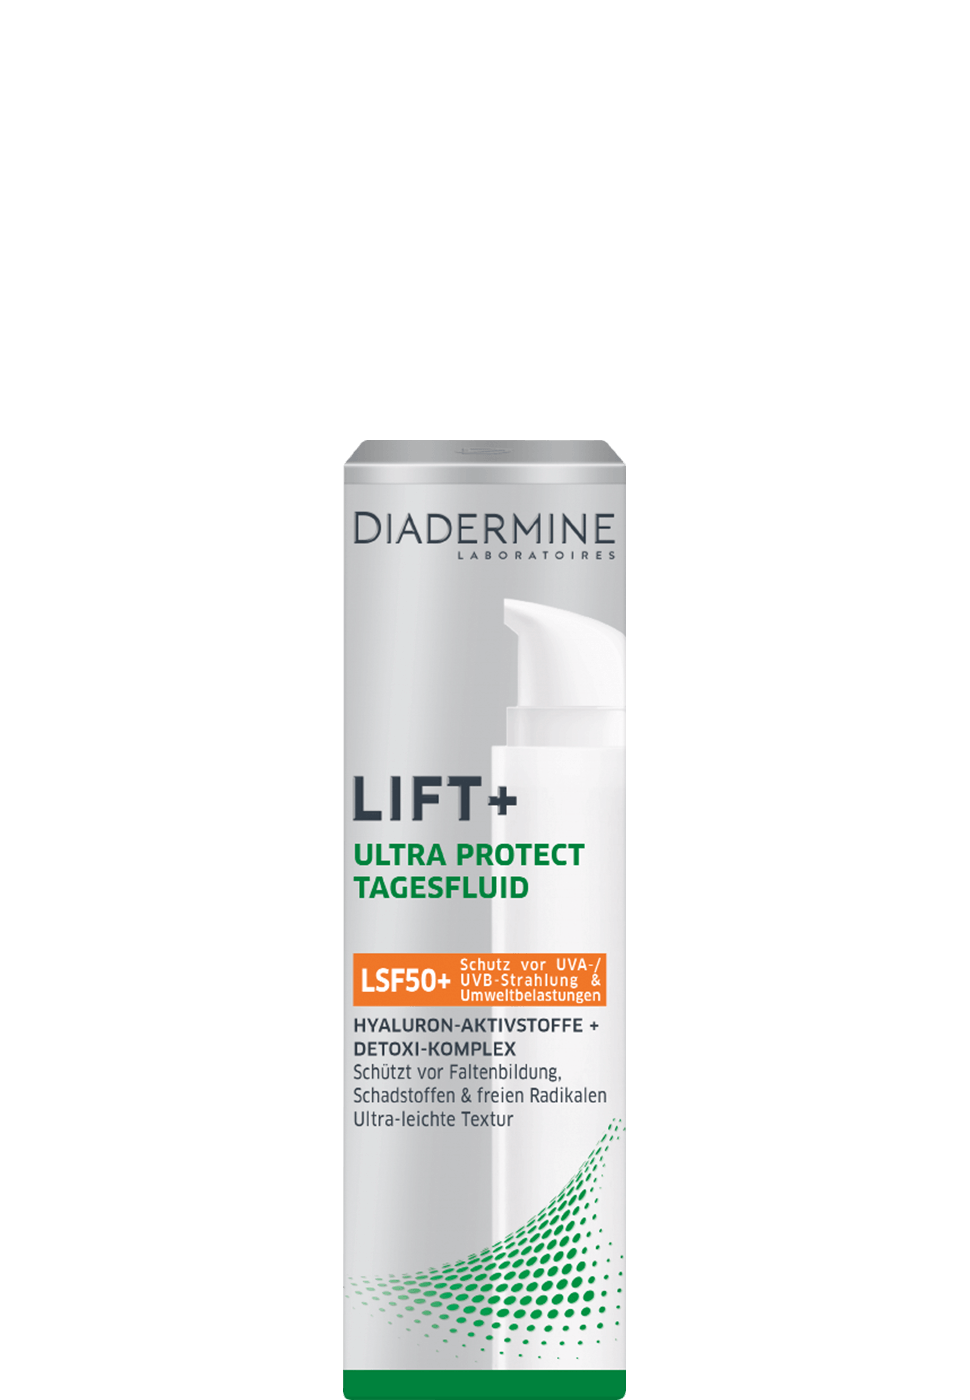 diadermine_de_lift_plus_ultra_protect_tagesfluid_lsf50_970x1400